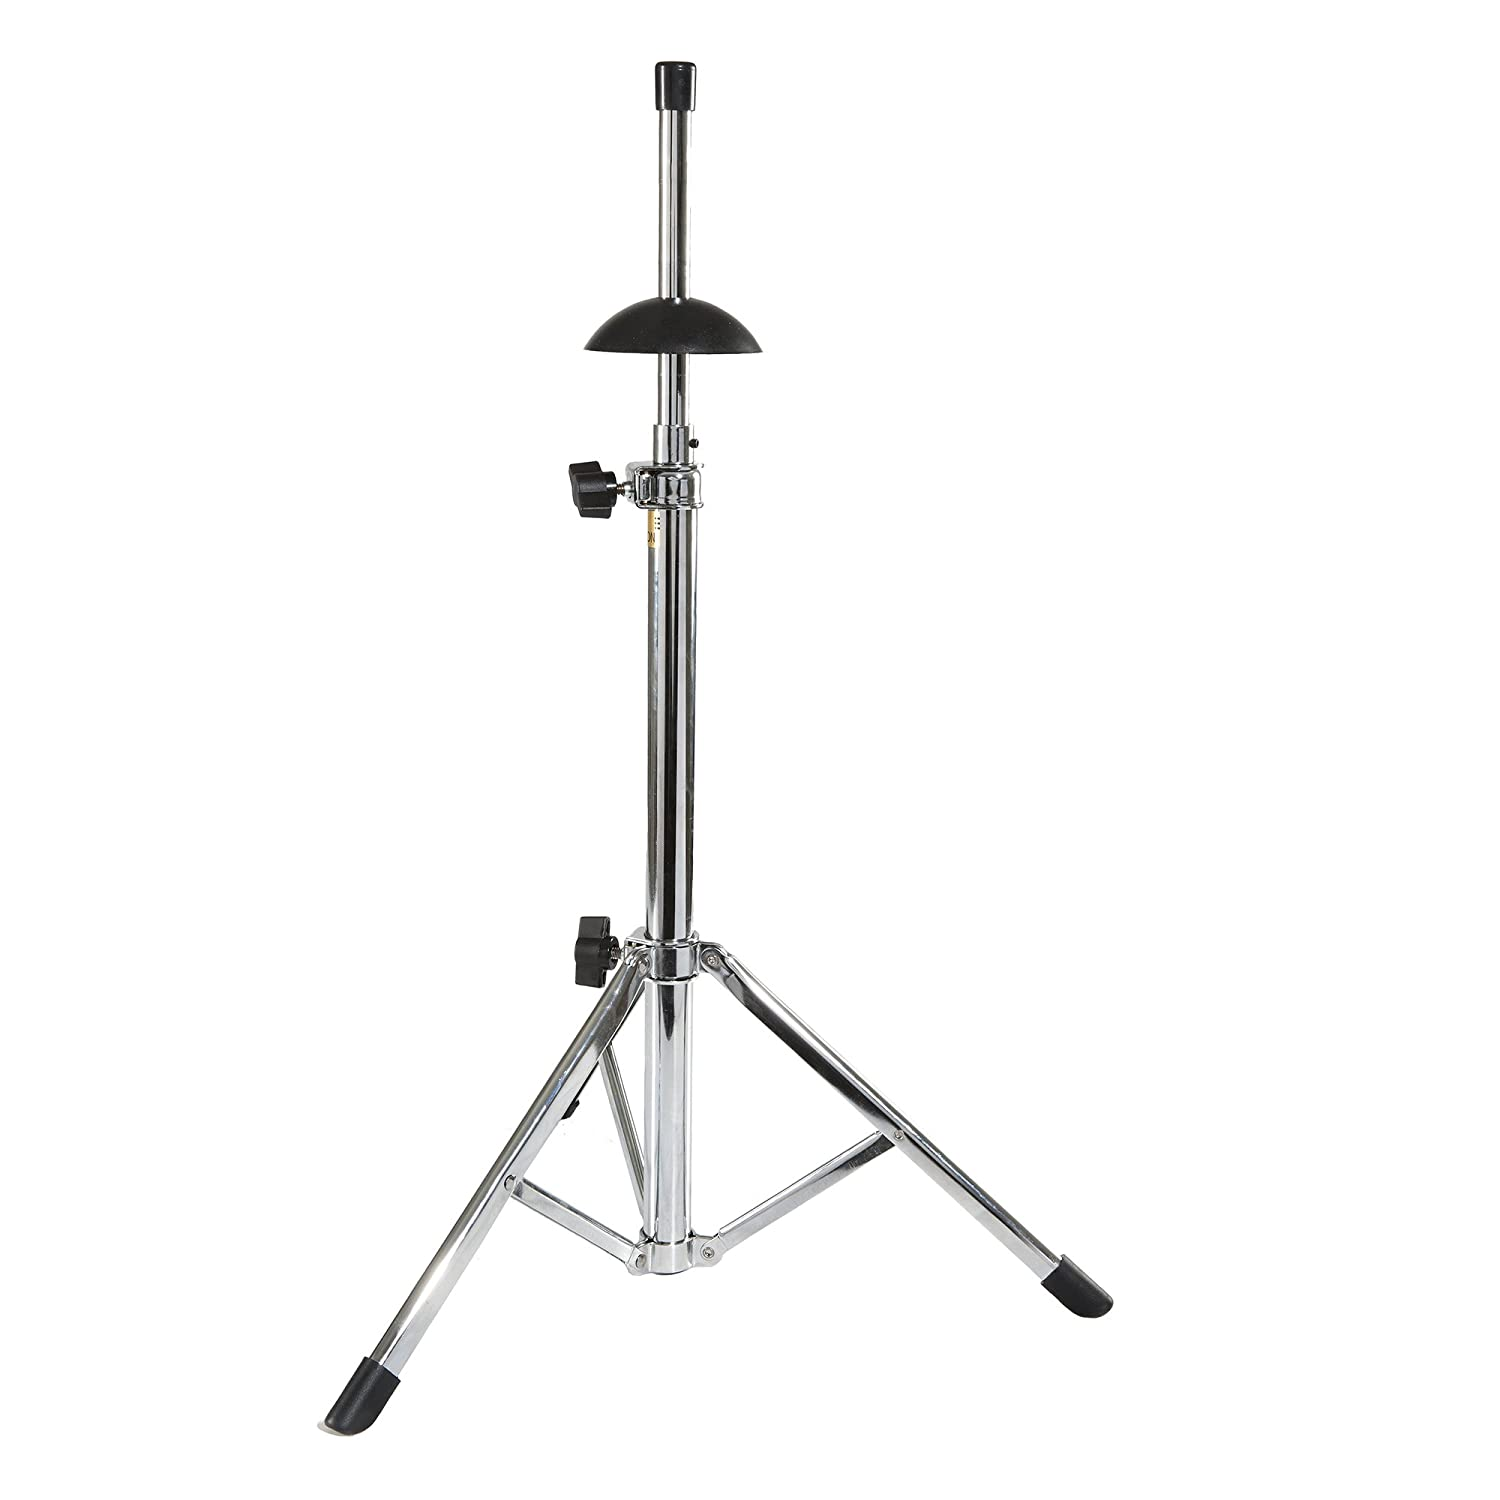 Hamilton KB510 Trombone Stand, Chrome Finish KMC Music Inc